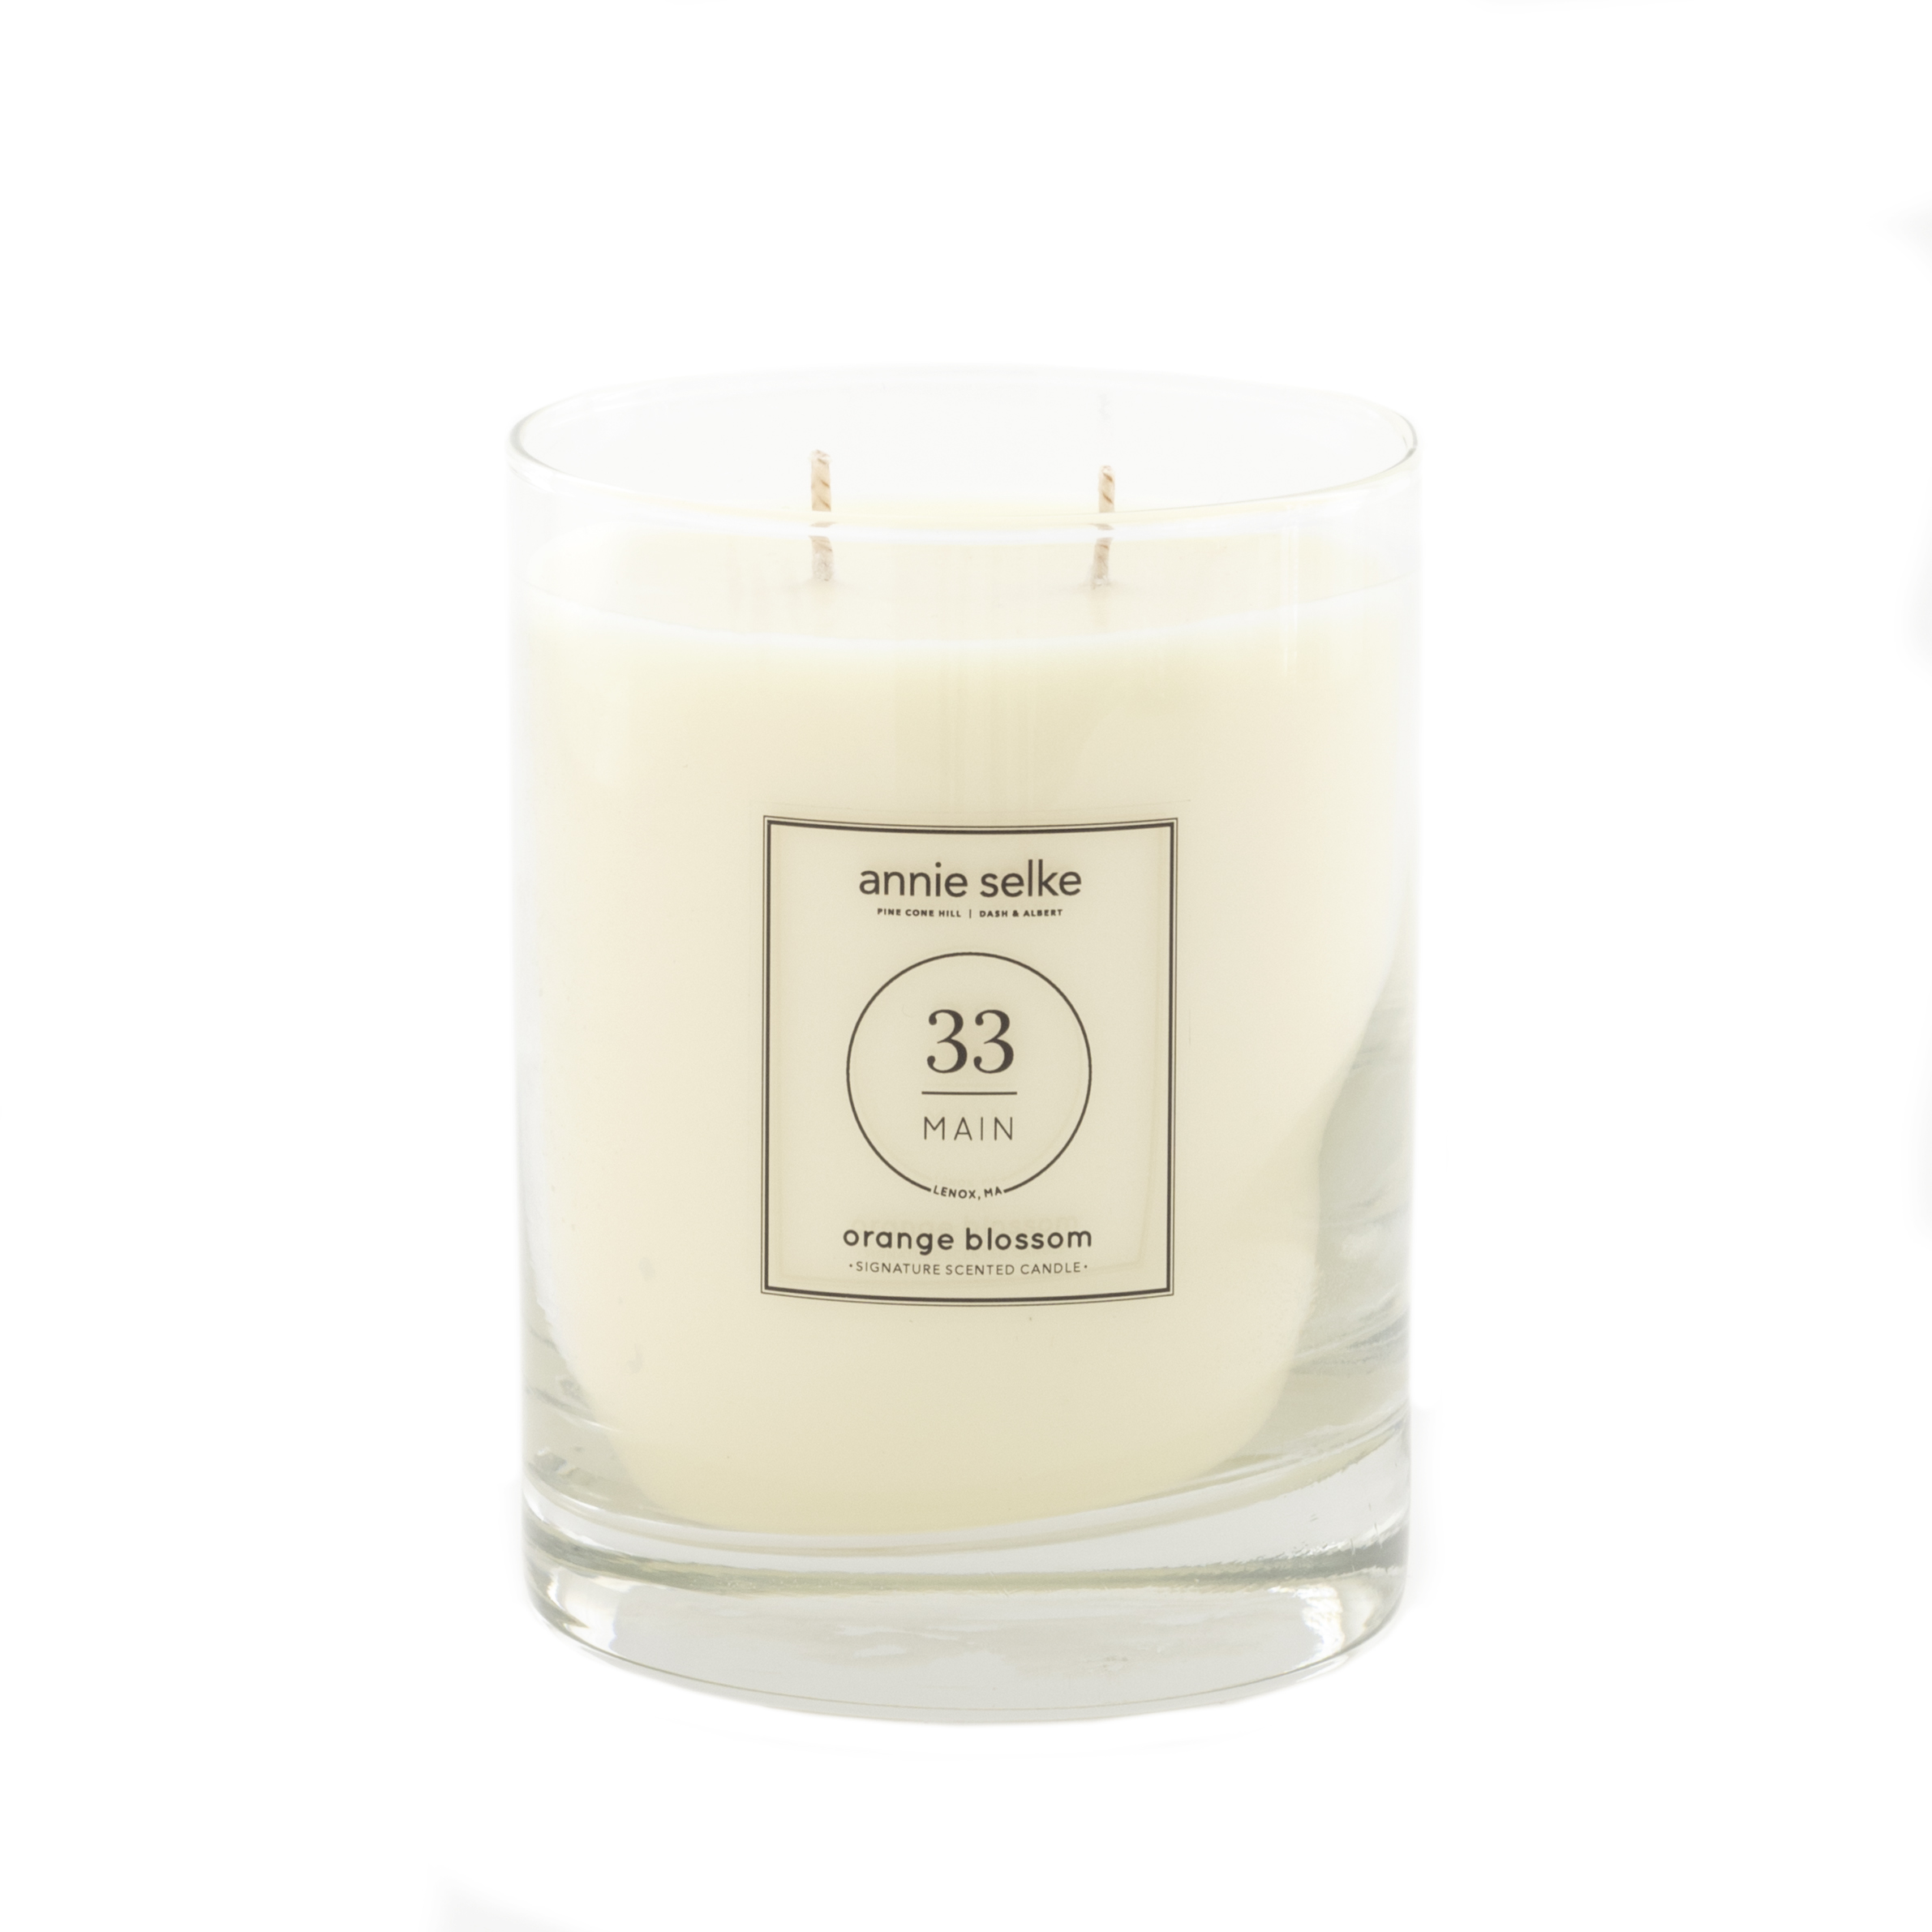 Annie's Candles for Glowing Reviews | Annie Selke's Fresh American Style